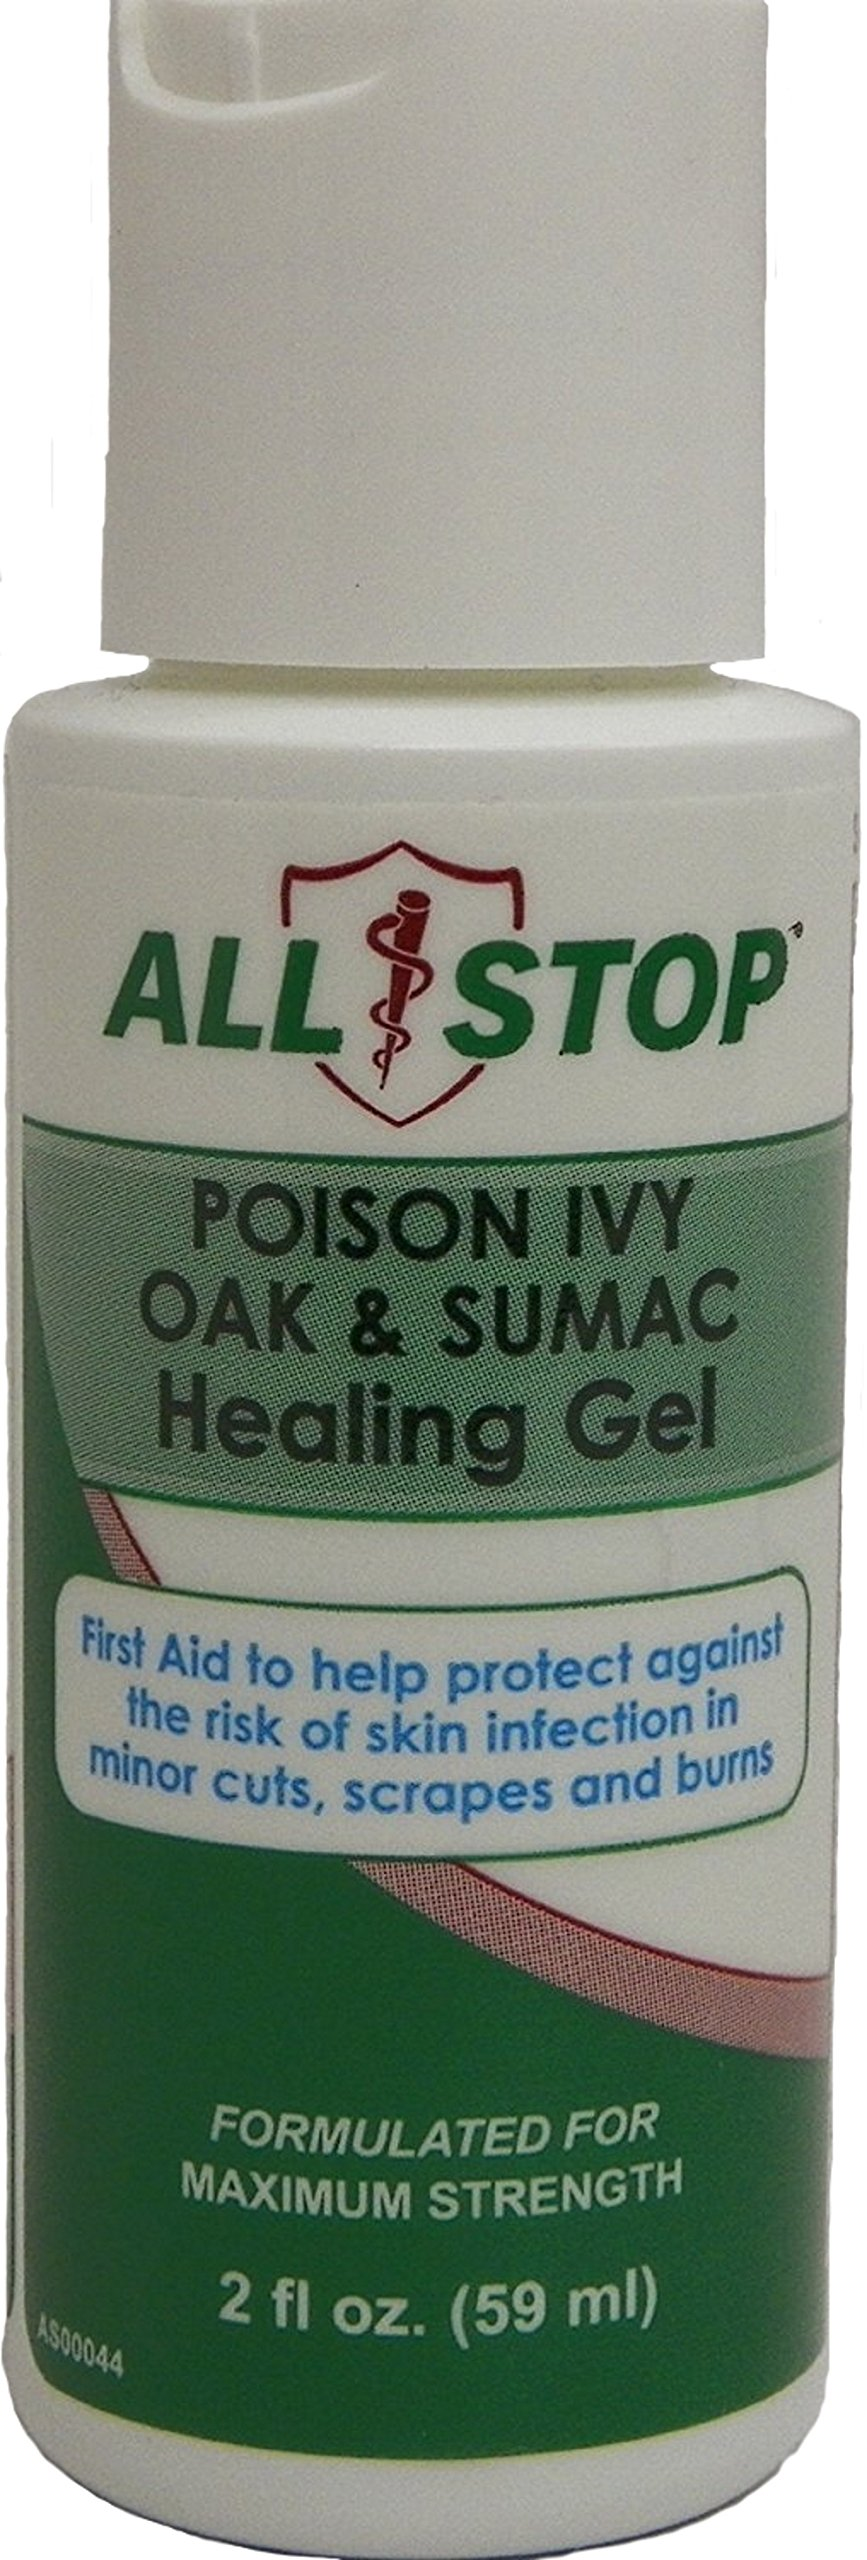 Poison Ivy, Poison Oak & Poison Sumac Healing Gel, Itch Cream - 2oz